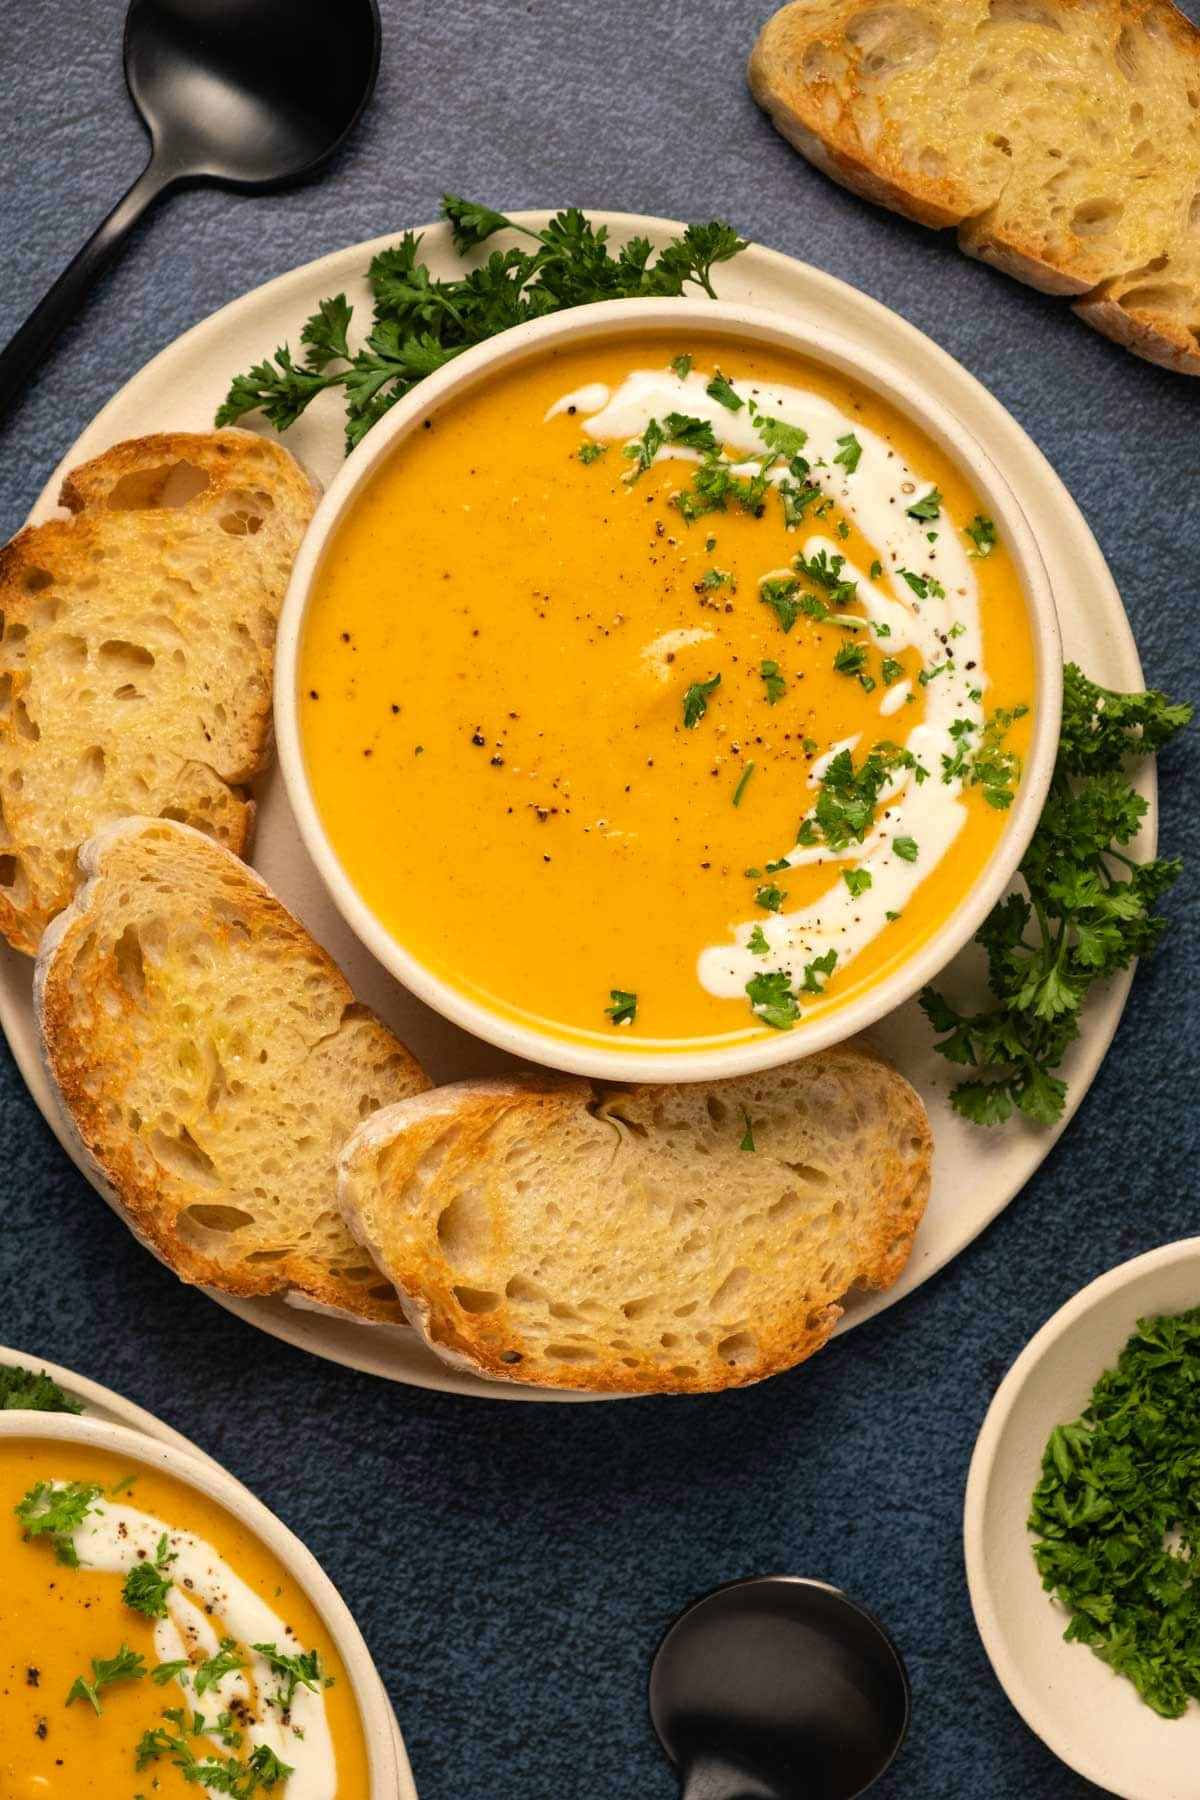 Sweet potato soup with fresh chopped parsley in a bowl.